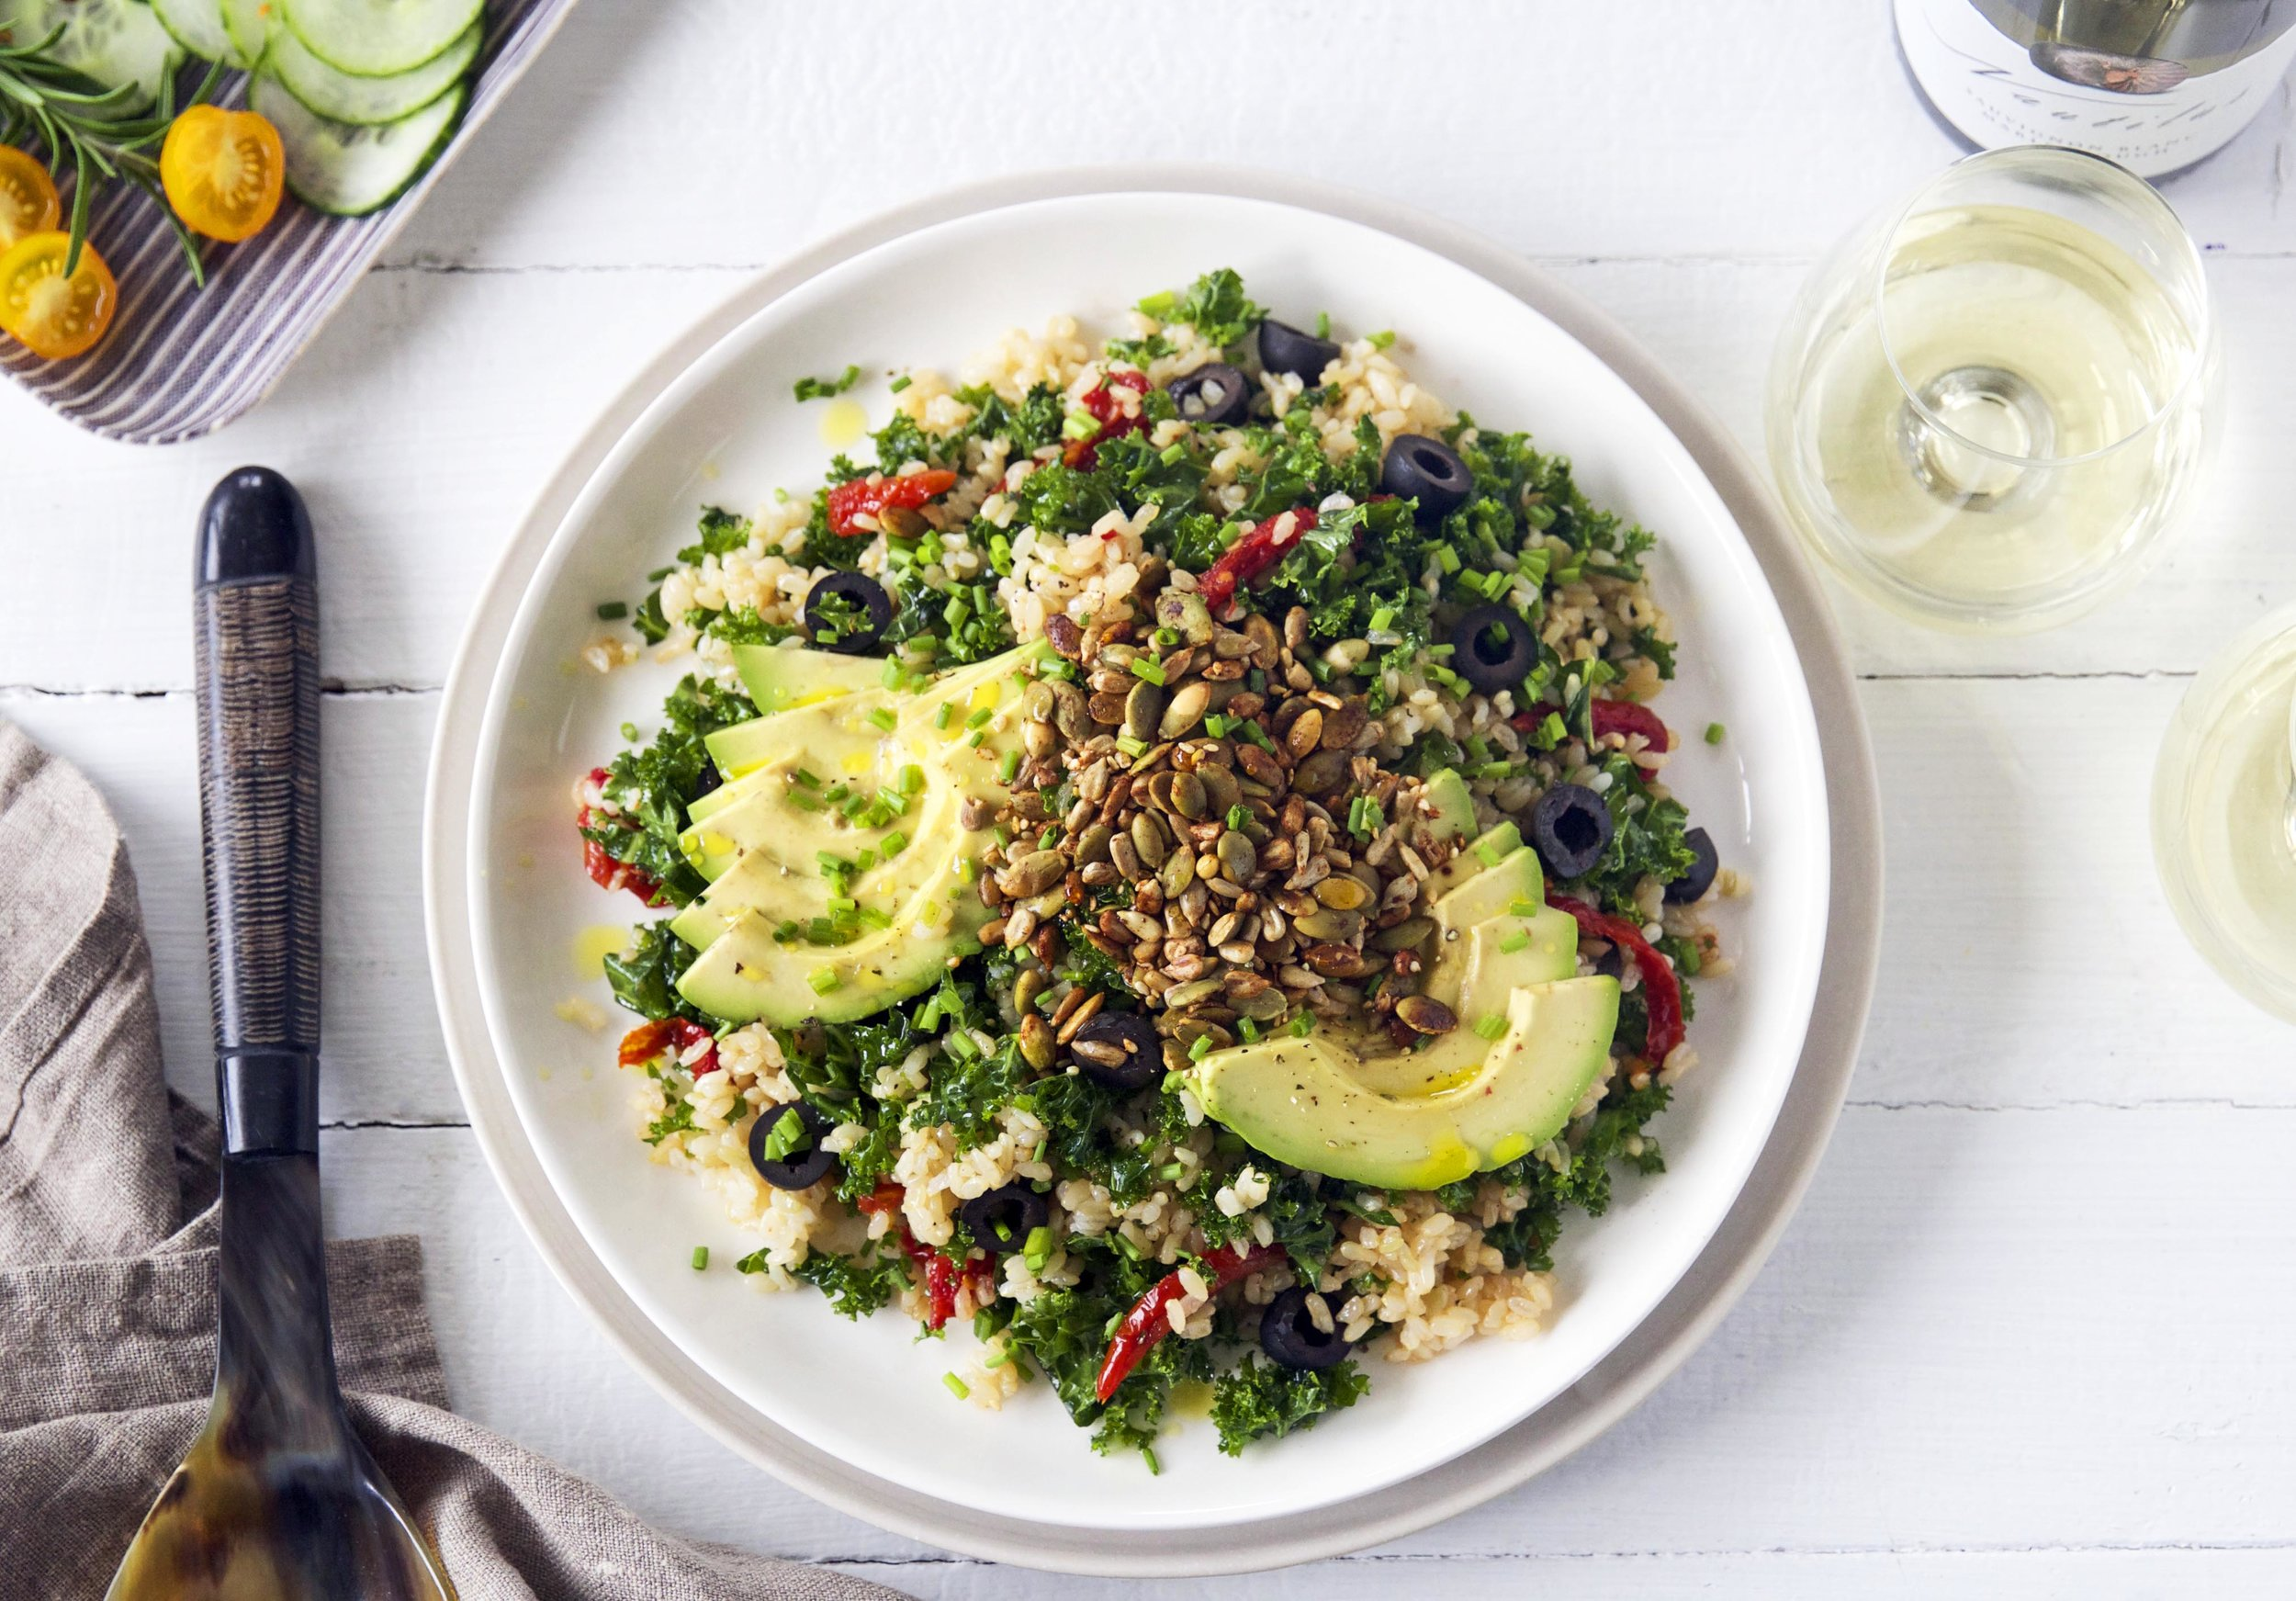 NAUTILUS_BBQ_Low Res_Brown Rice Salad2.jpg